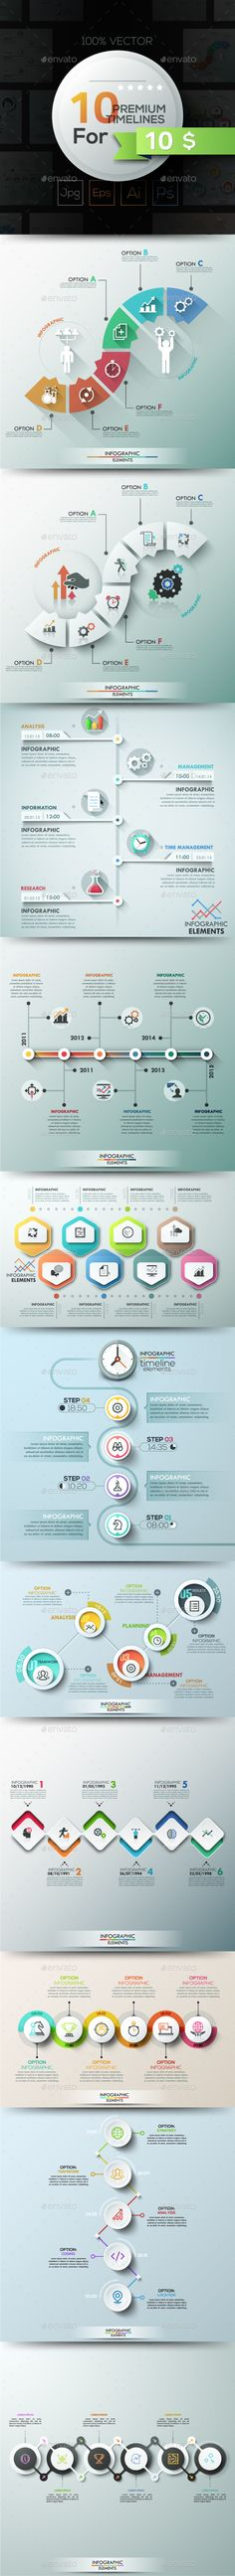 10 Infographic Timelines. Part 2 - Infographics